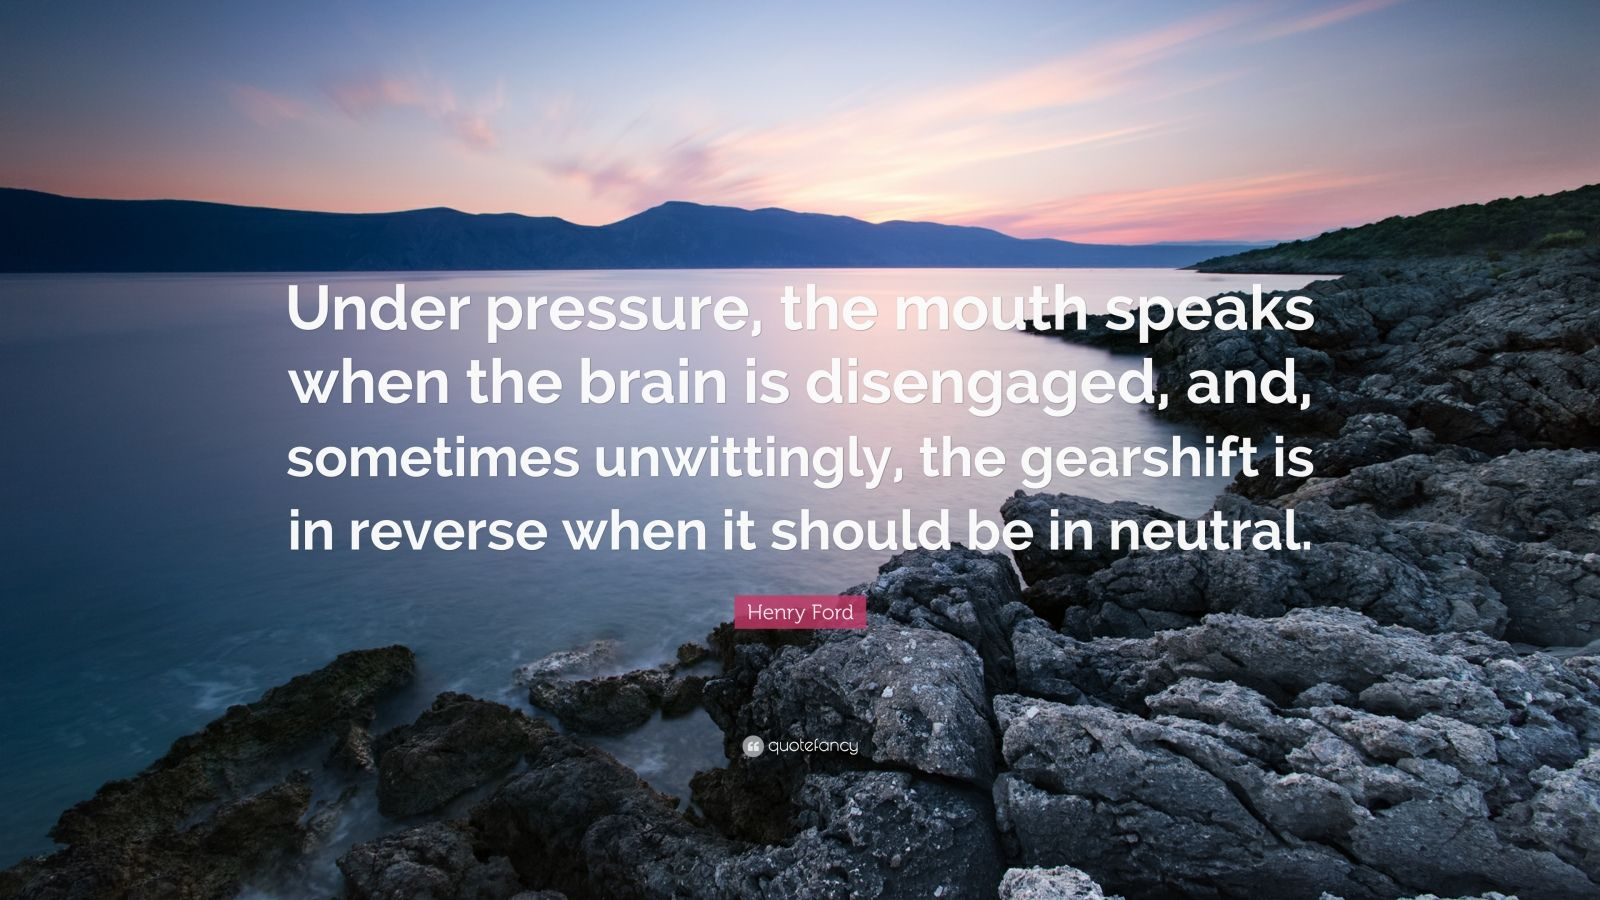 "Henry Ford Quote: ""Under pressure, the mouth speaks when the brain is disengaged, and, sometimes unwittingly, the gearshift is in reverse when it should be in neutral."""